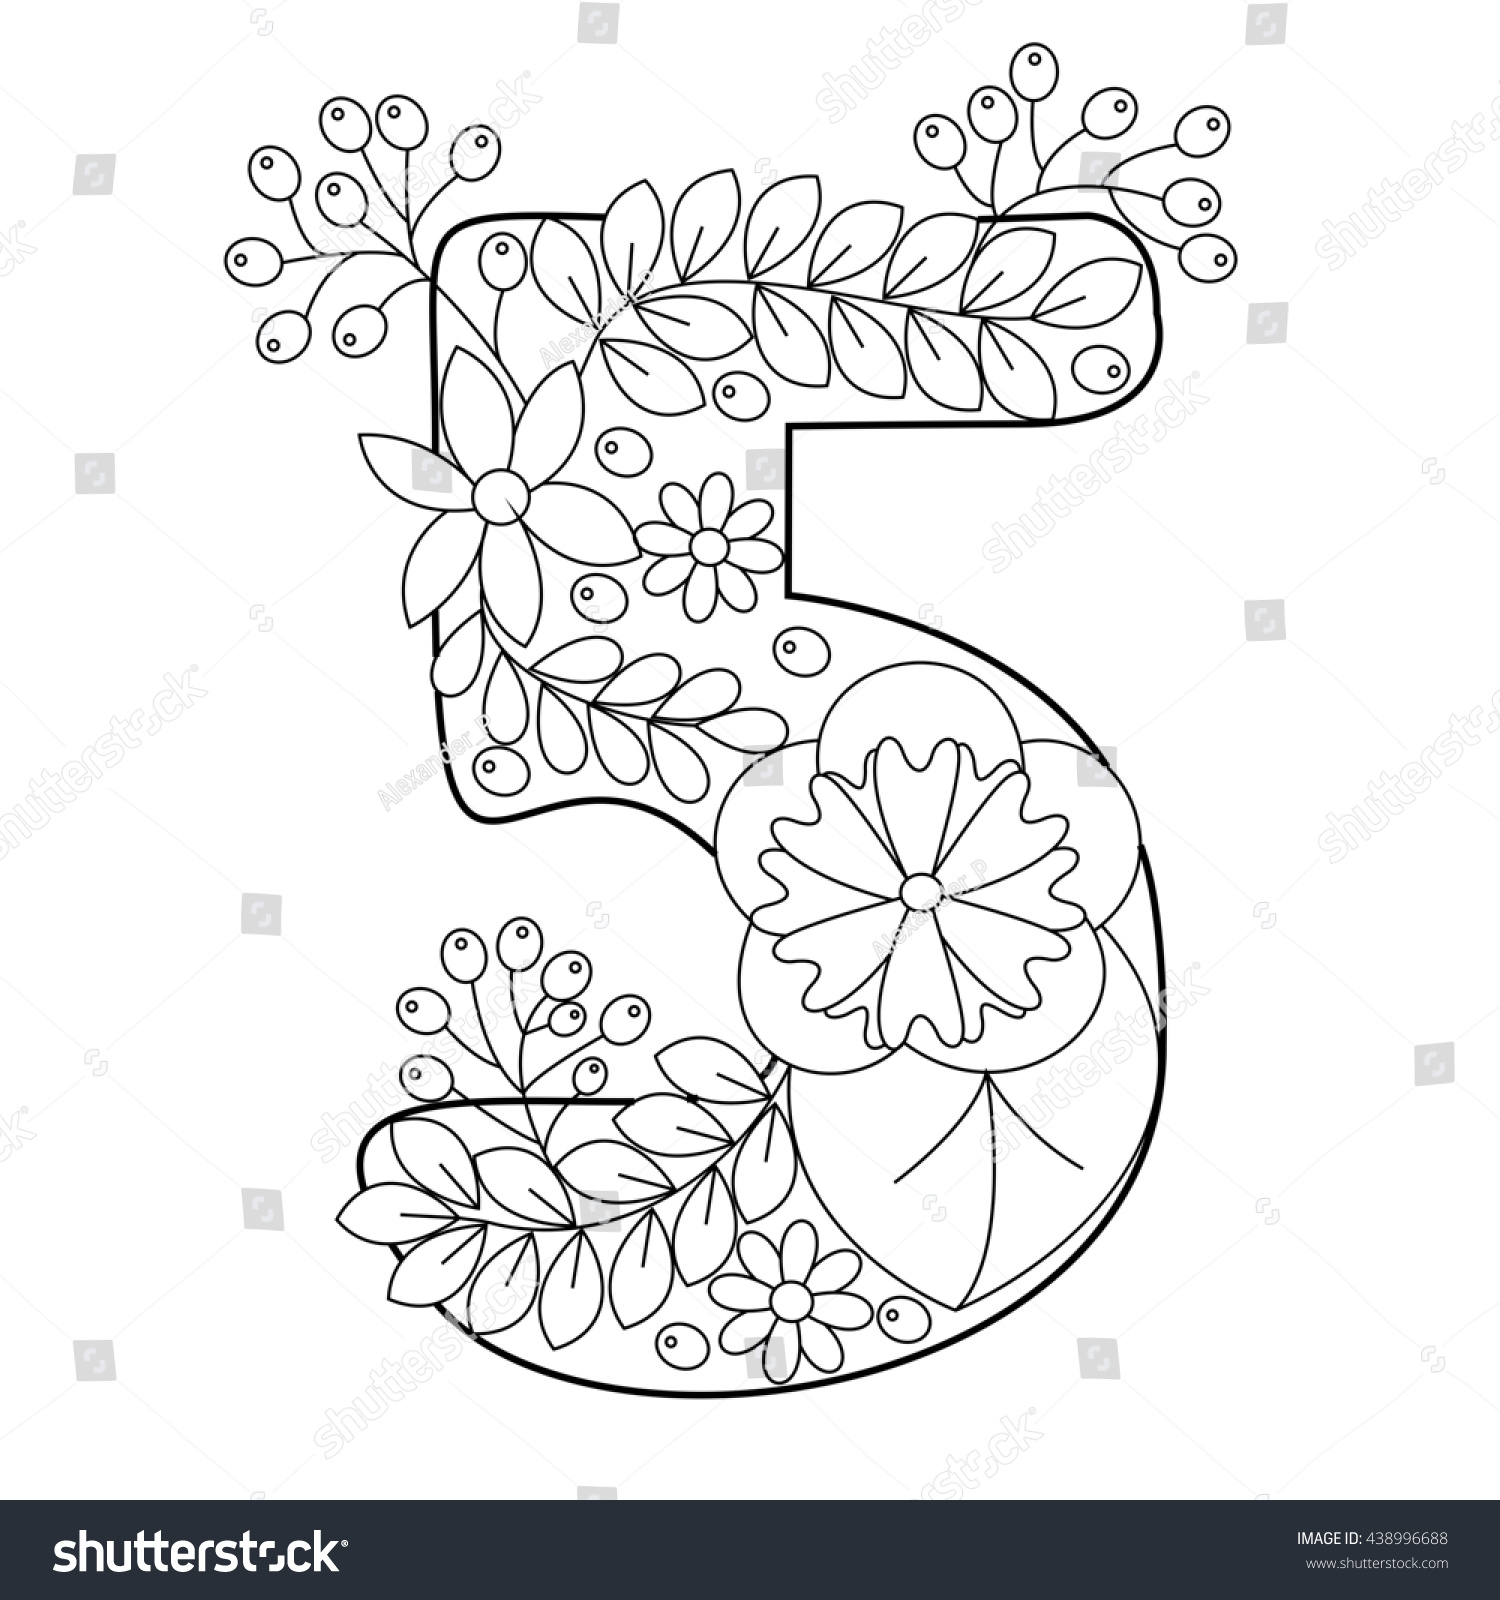 Floral Alphabet Number Coloring Book For Adults Raster